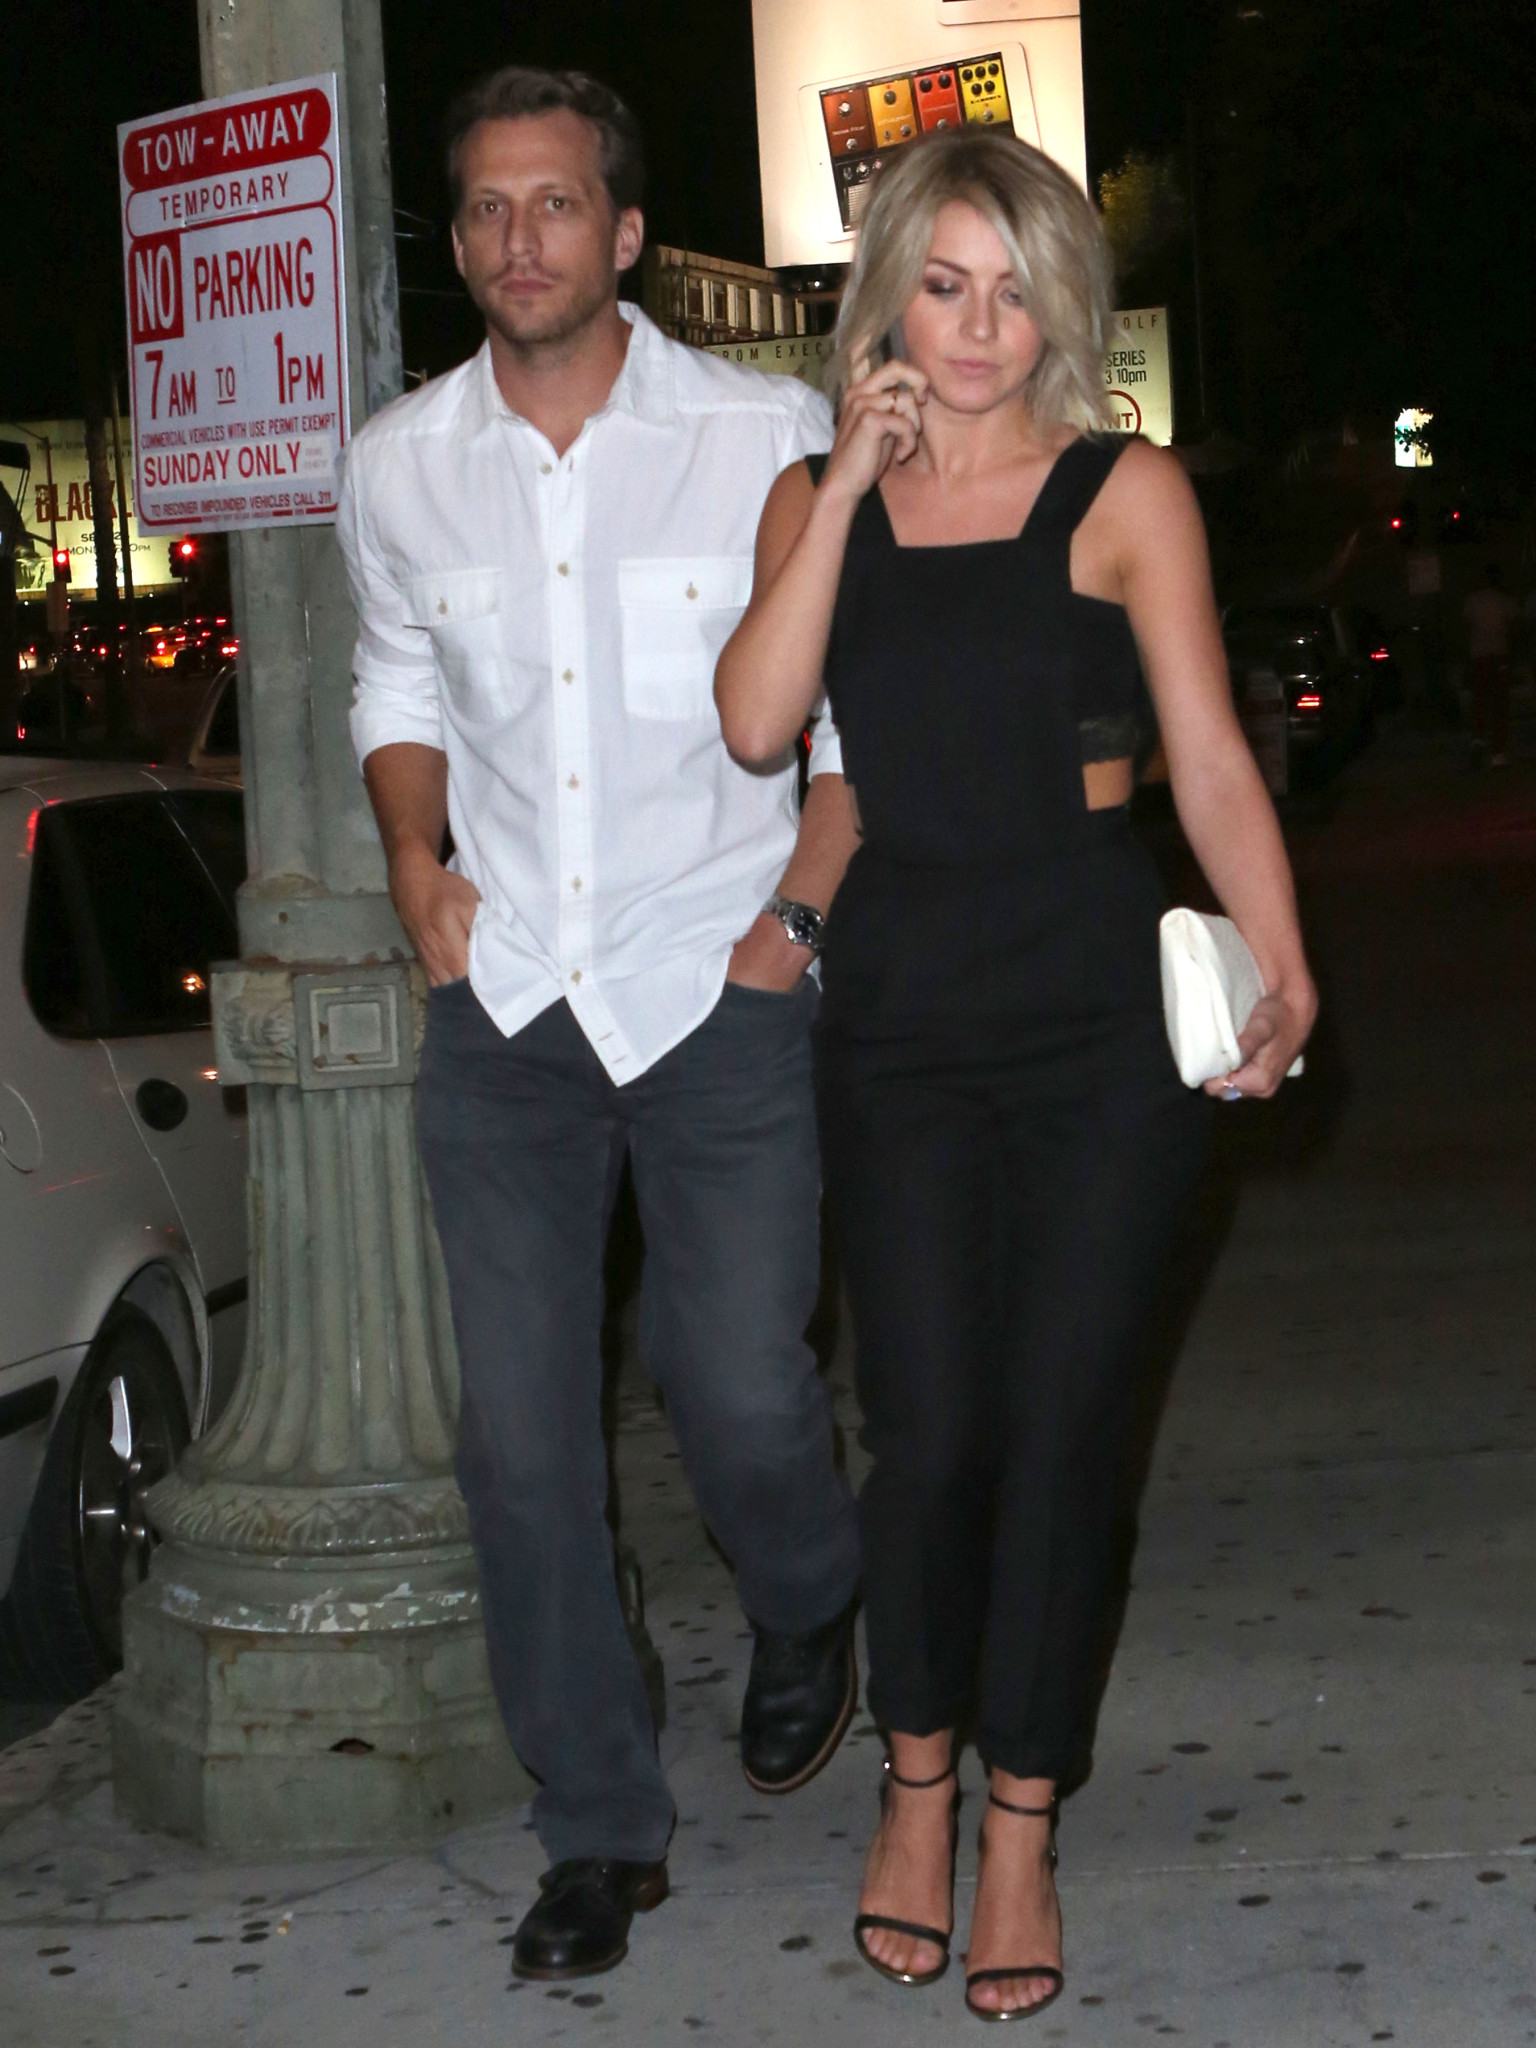 Who dating julianne hough